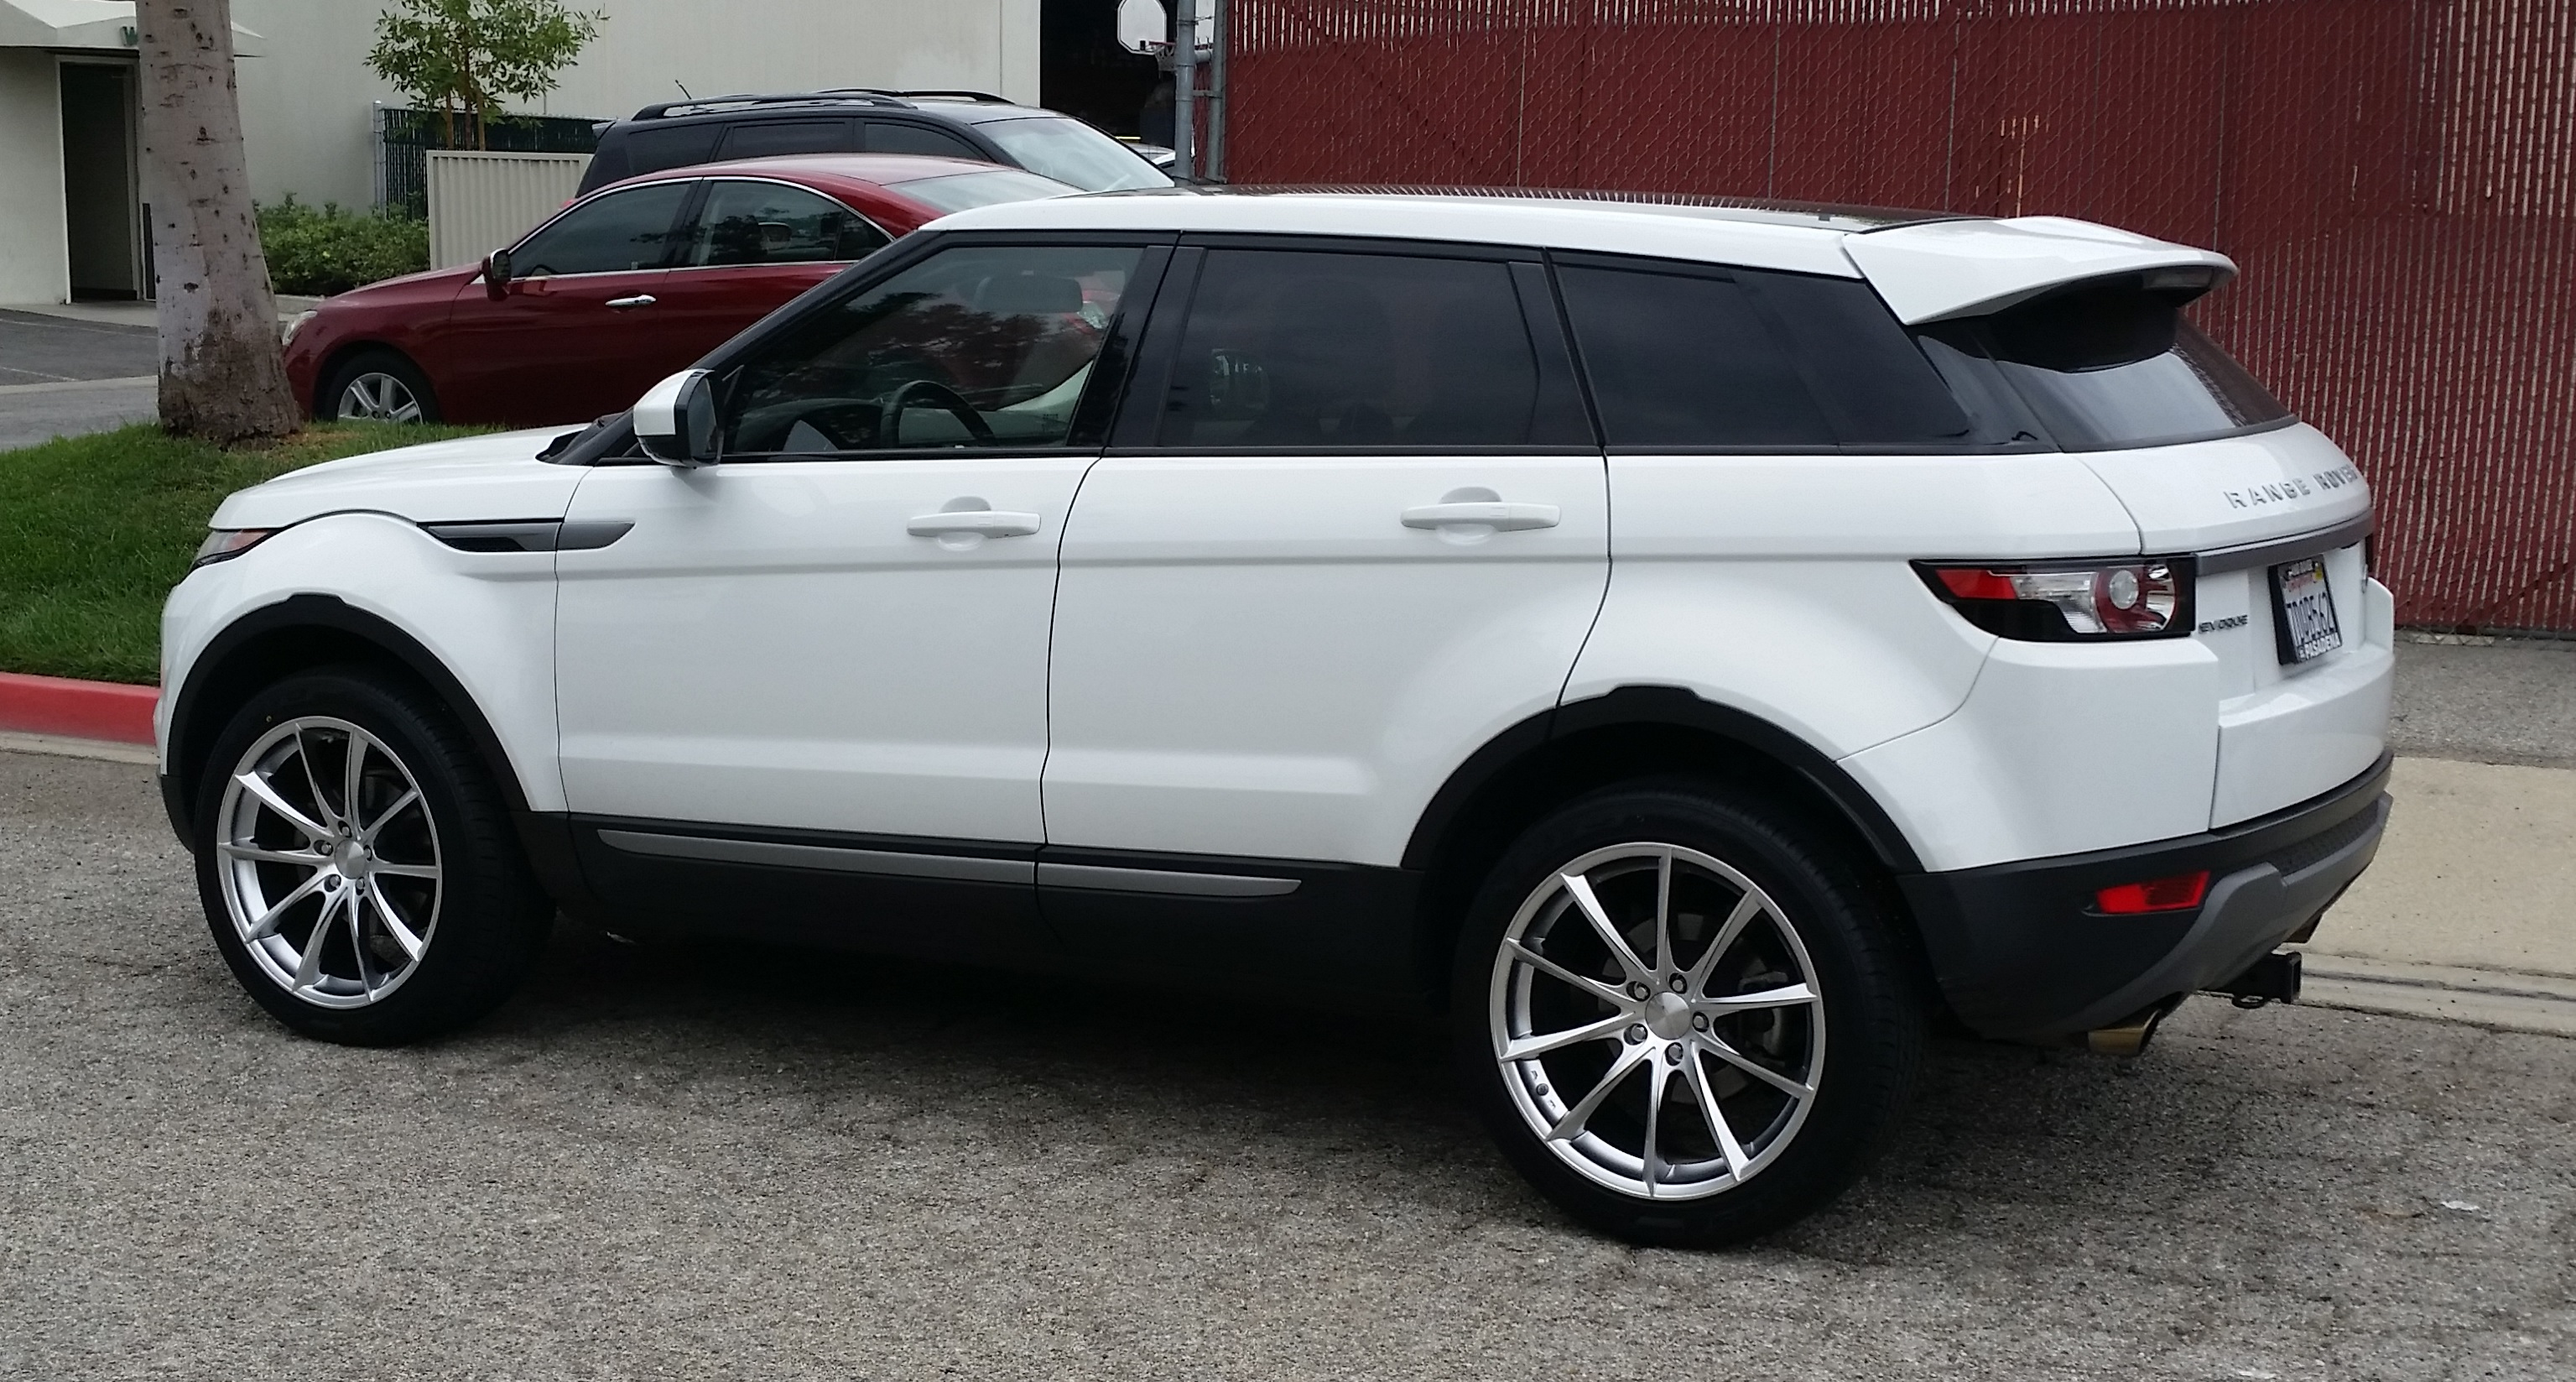 Name:  Evoque New Rims.jpg